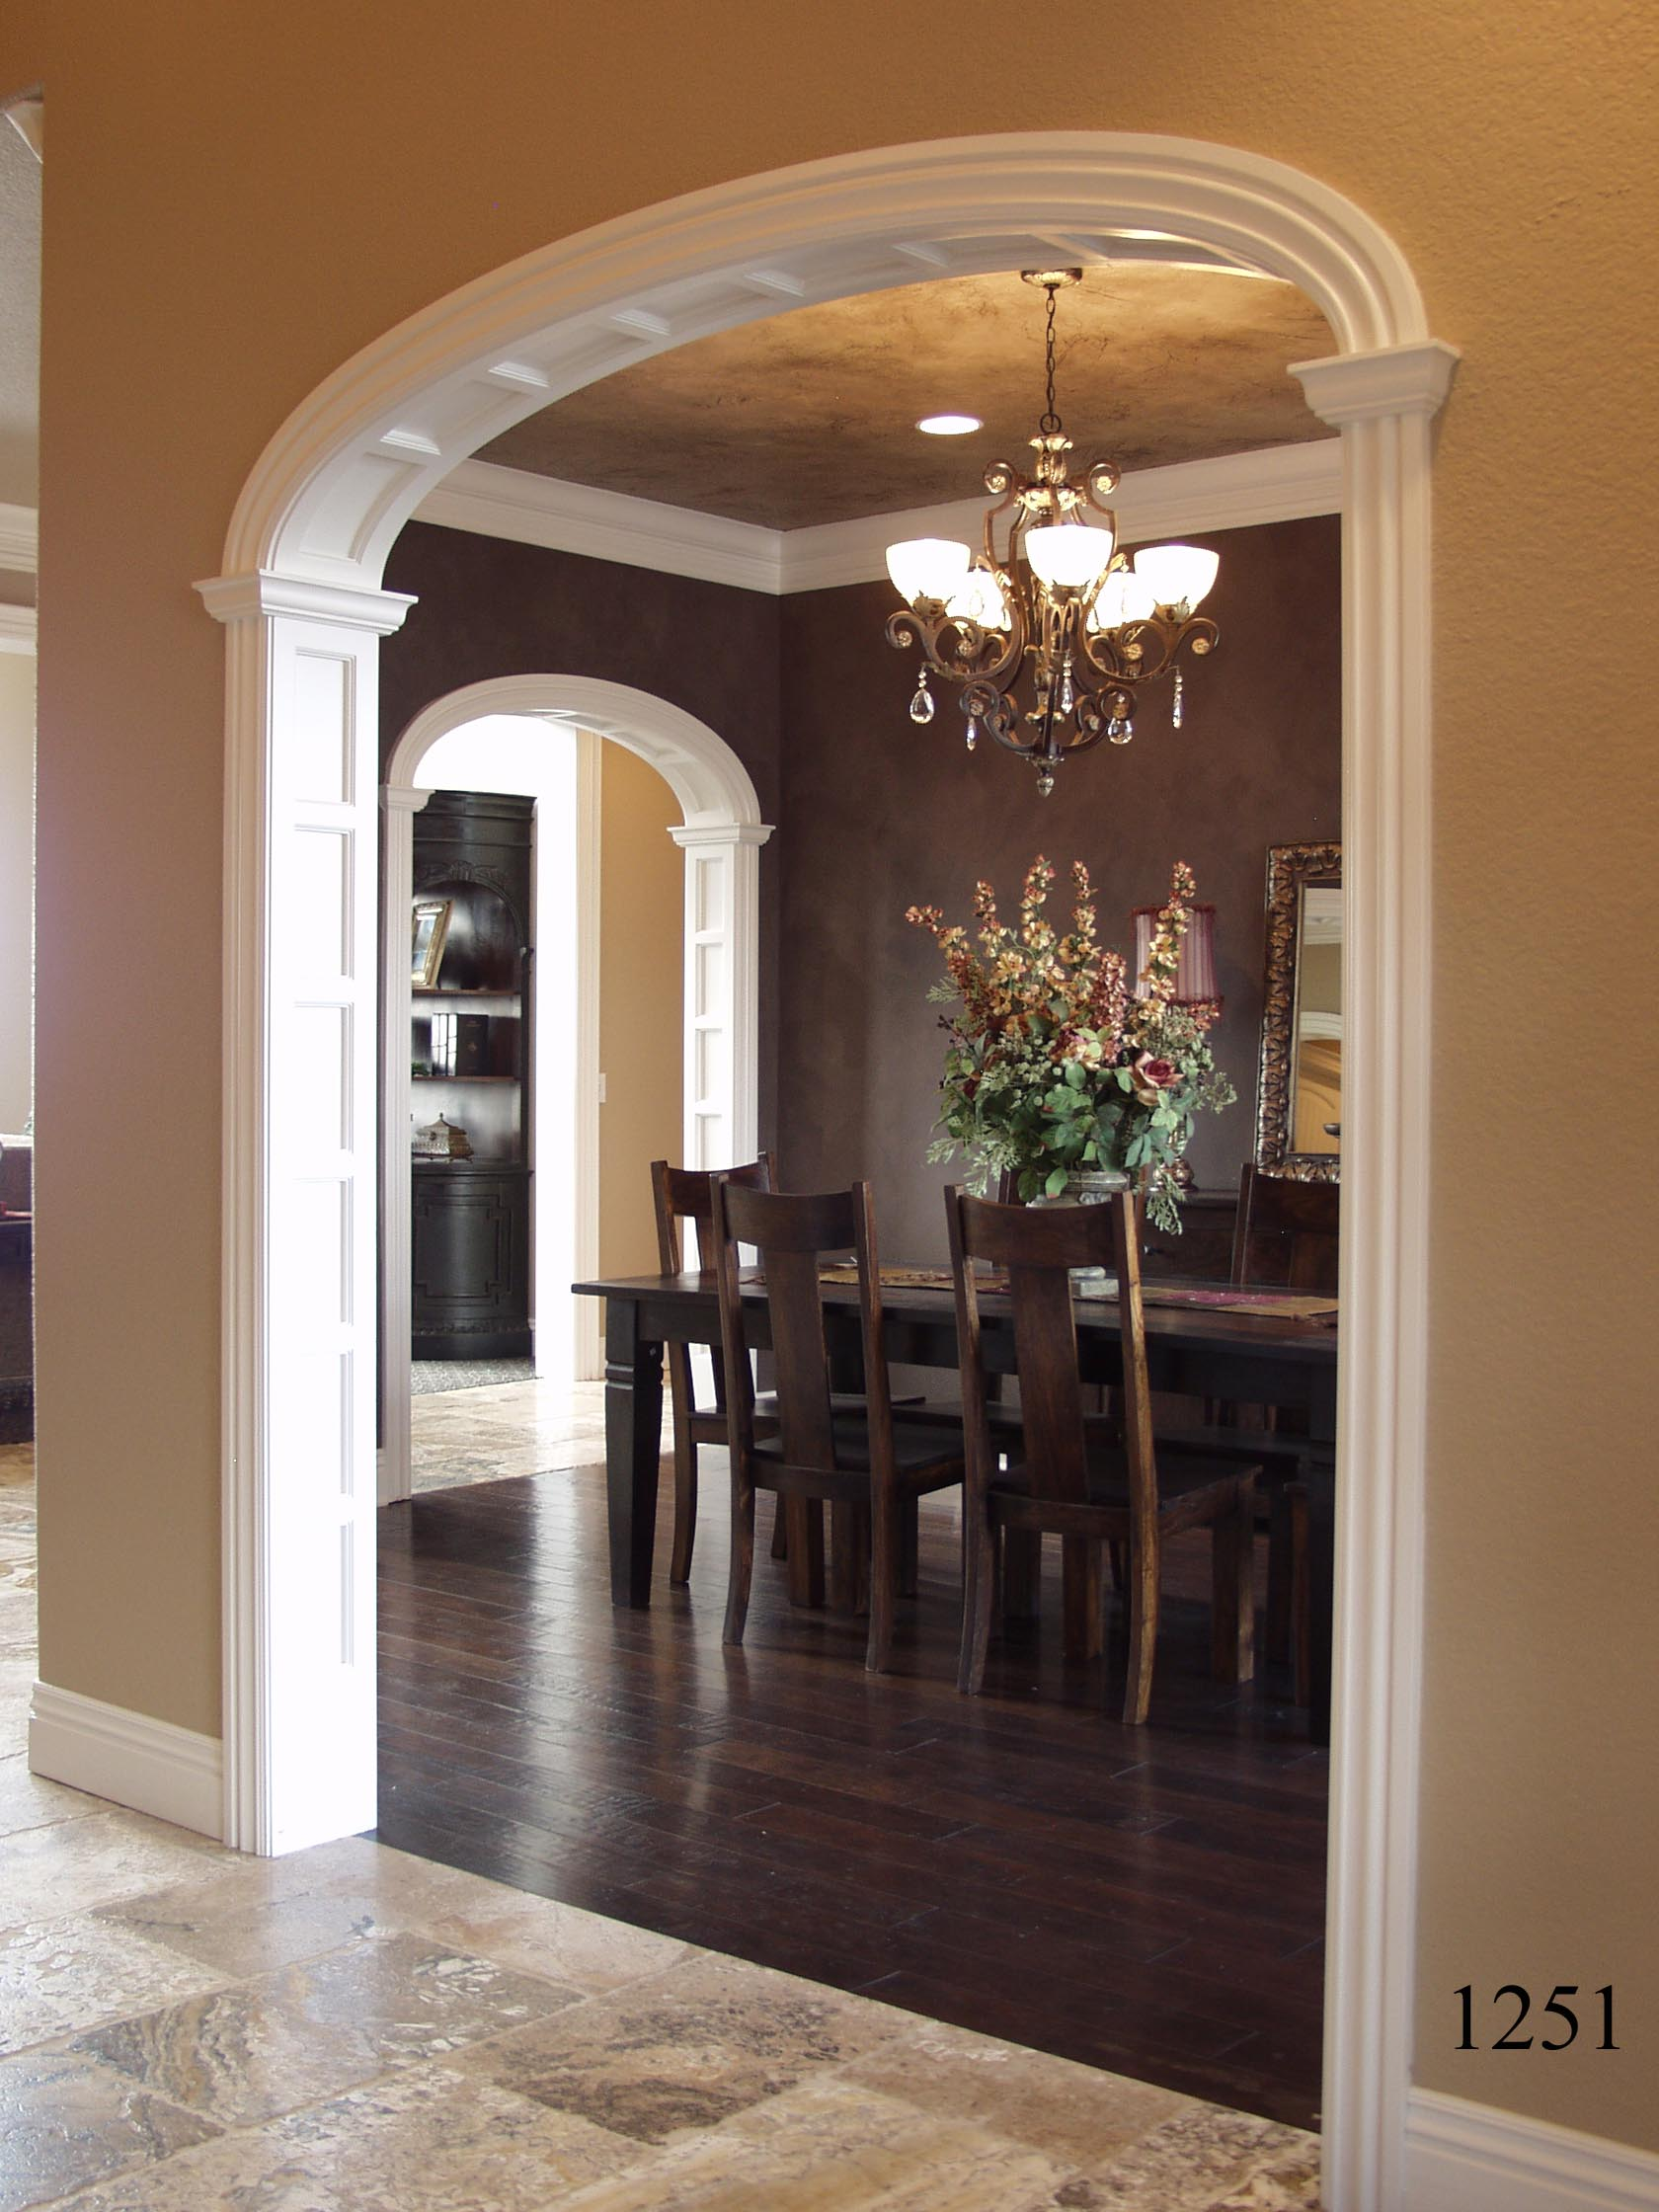 Elegant Arches  Rounded Archway Mouldings in Rogers Arkansas